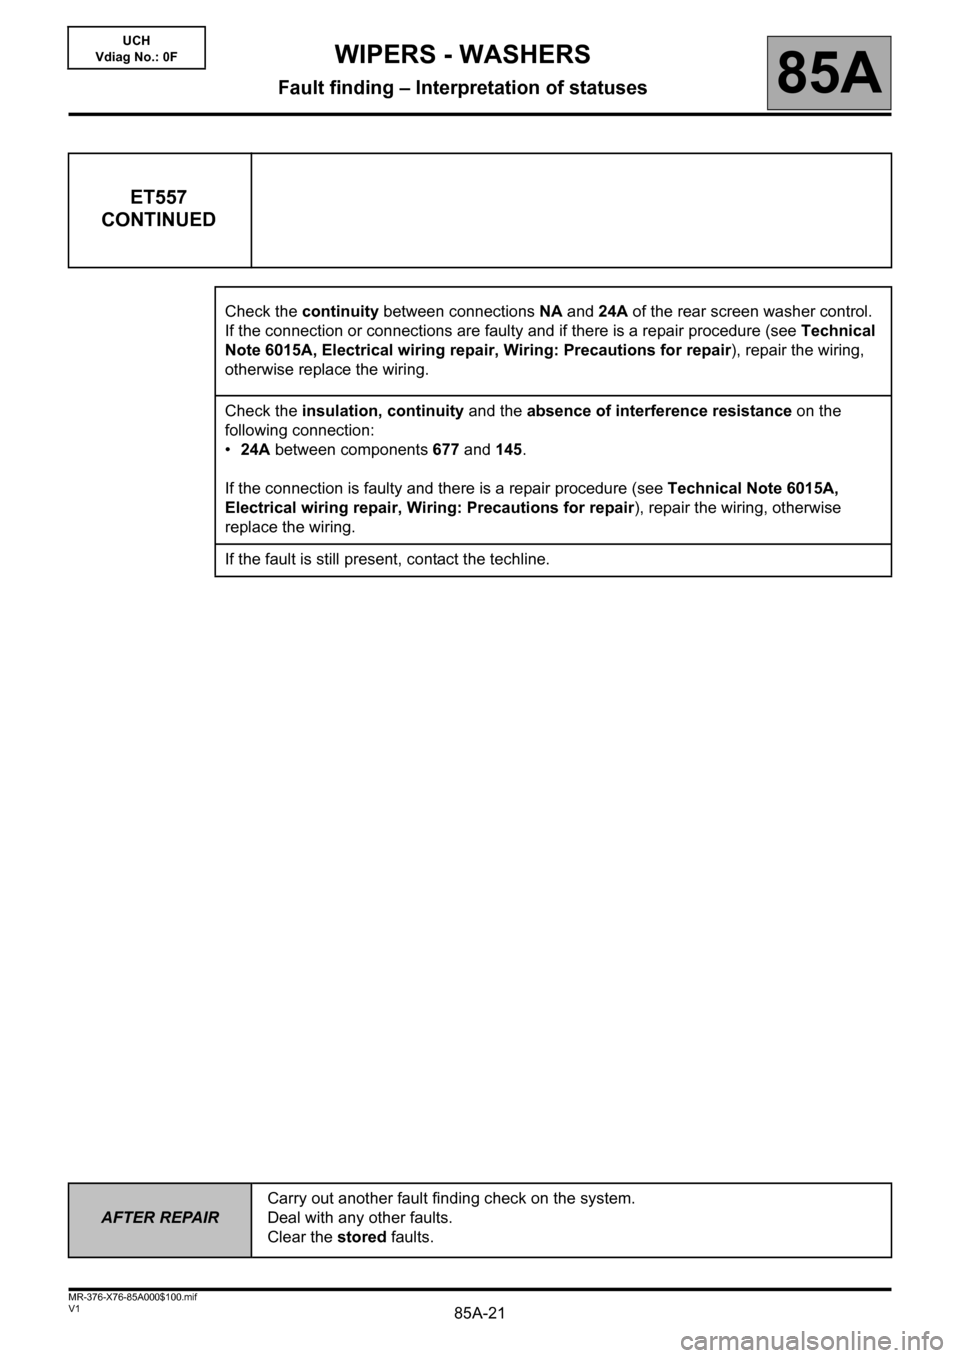 RENAULT KANGOO 2013 X61 / 2.G Wipers And Washers Workshop Manual, Page 21